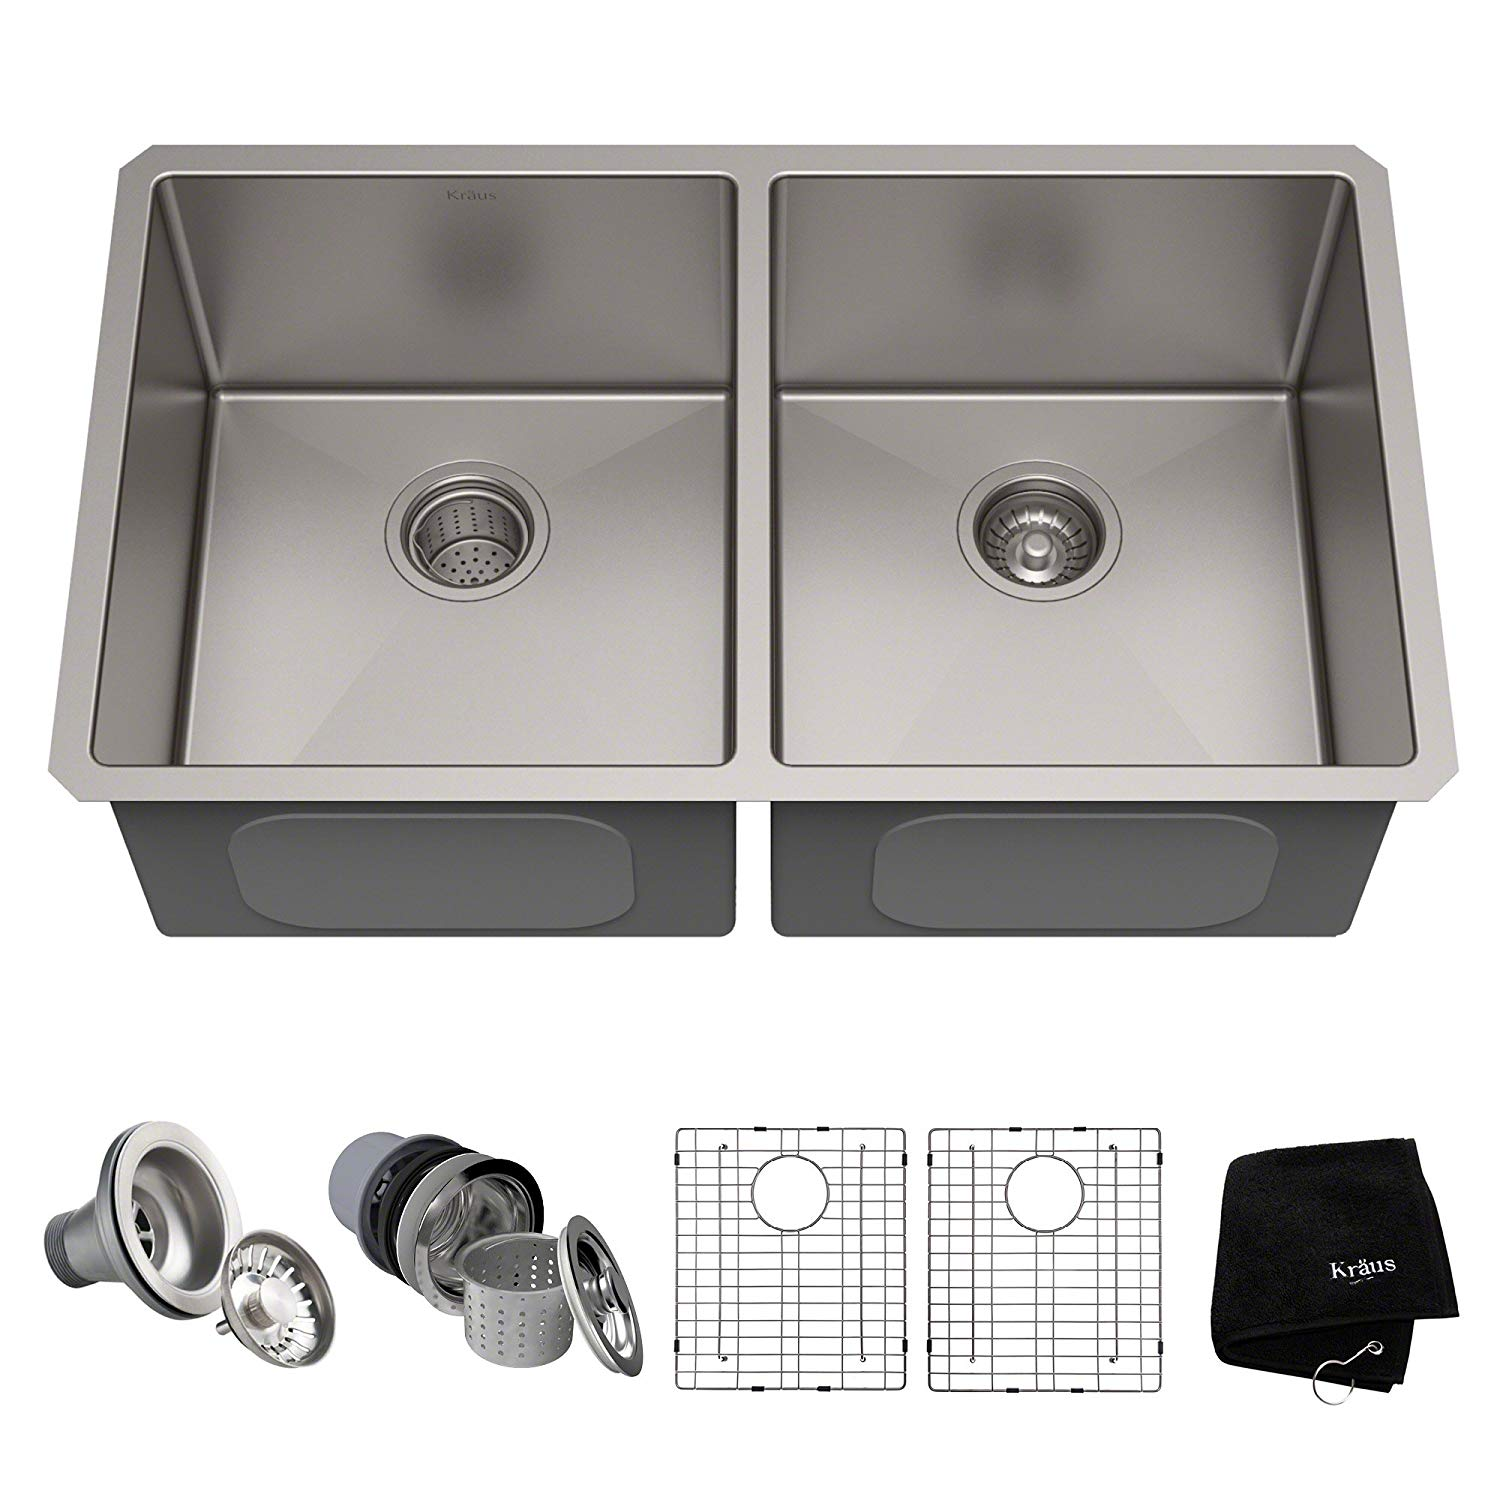 Kraus Undermount Double Bowl Sink